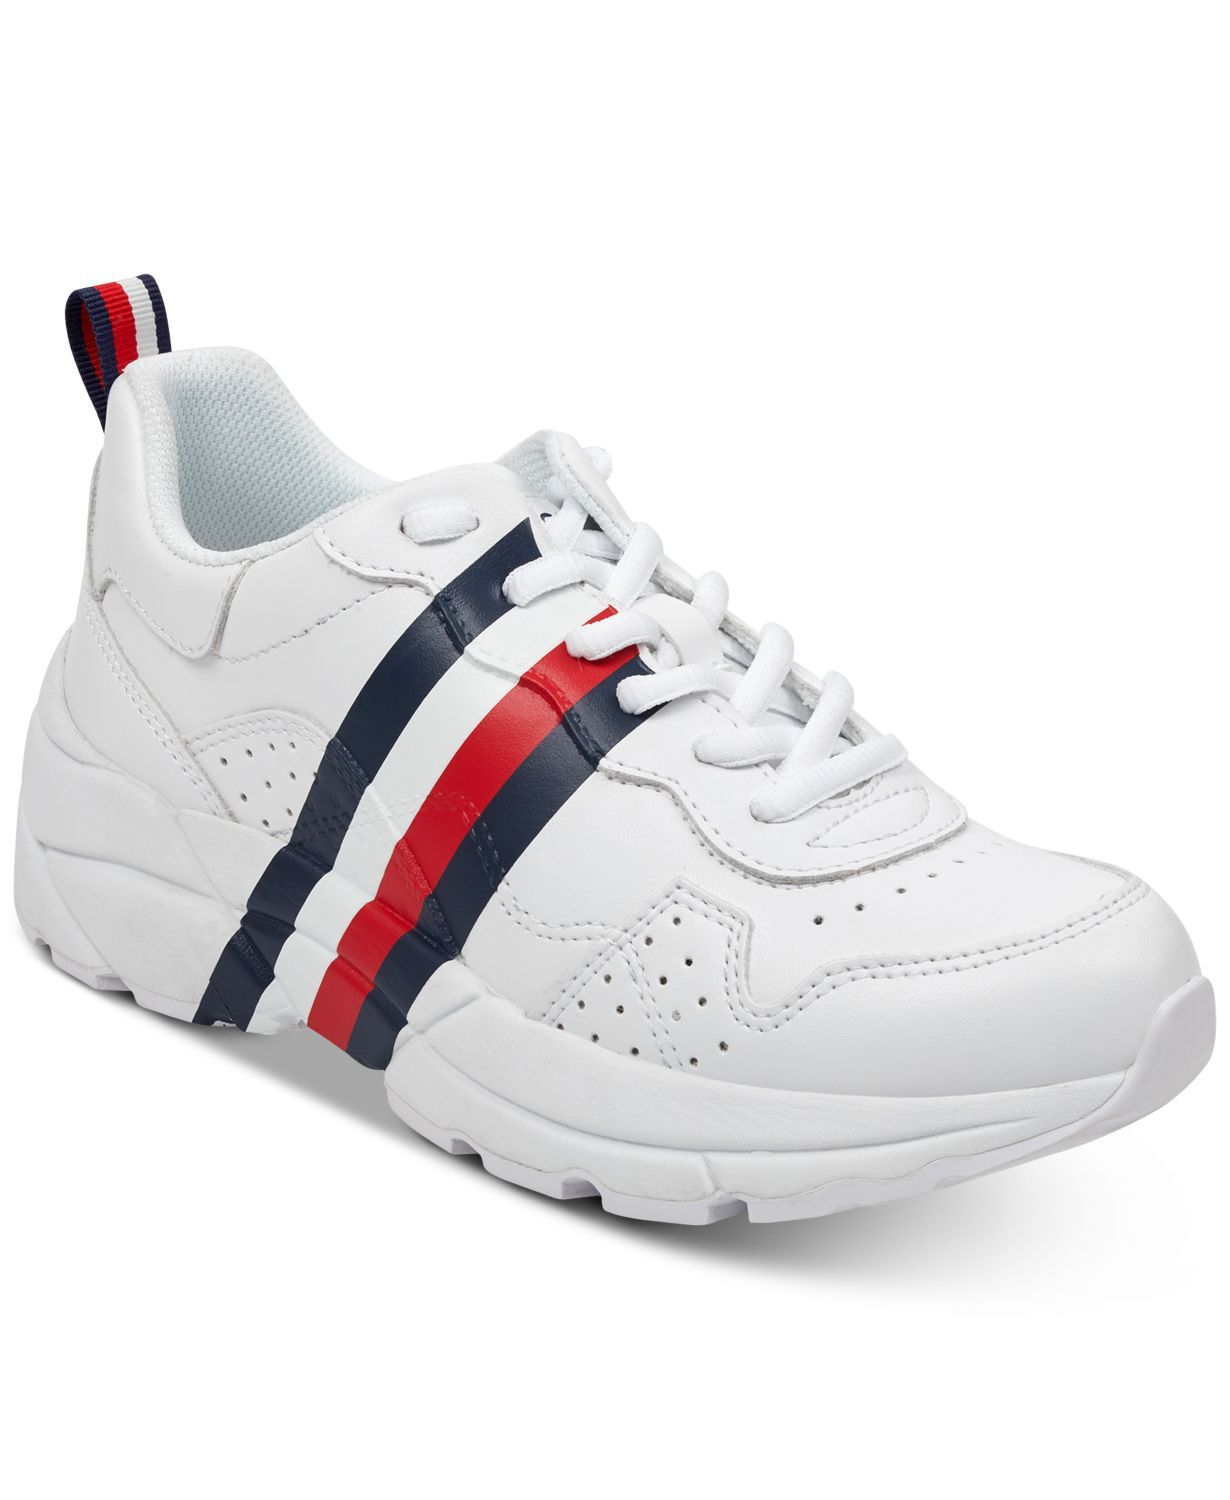 """Unique Dad Sneakers Tommy Hilfiger macys.com $79.00 SHOP NOW You've seen a hundred pairs of """"dad sneakers"""" by now, right?"""